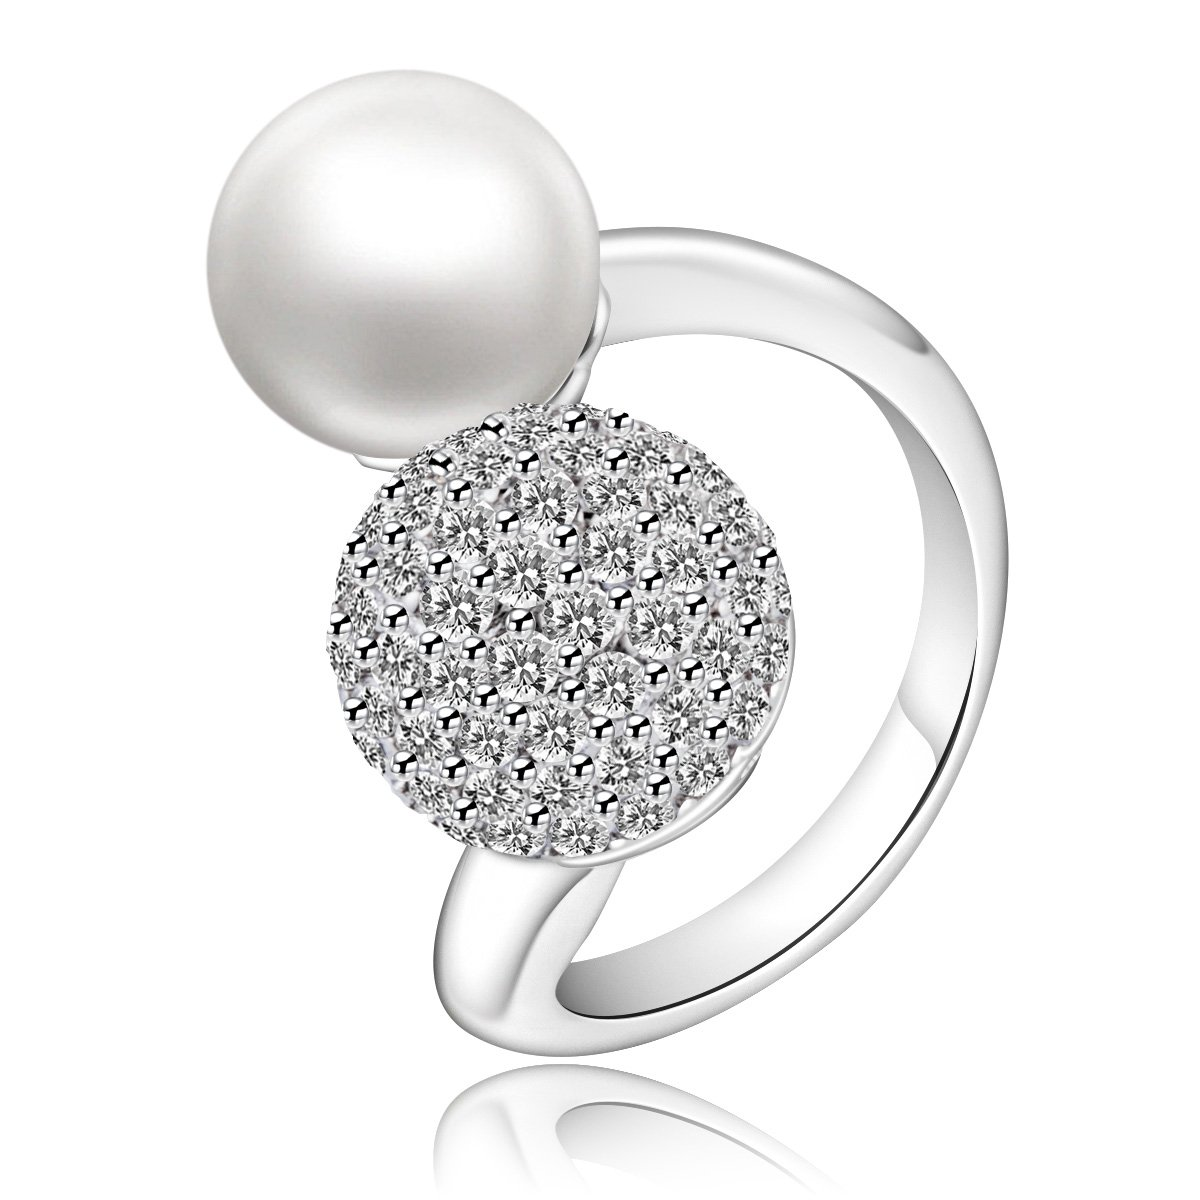 Faenlior Women Fashion Jewelry Platinum Plated Sterling Silver Rhinestone Crystal Ball Pearl Adjustable Open Rings (7)